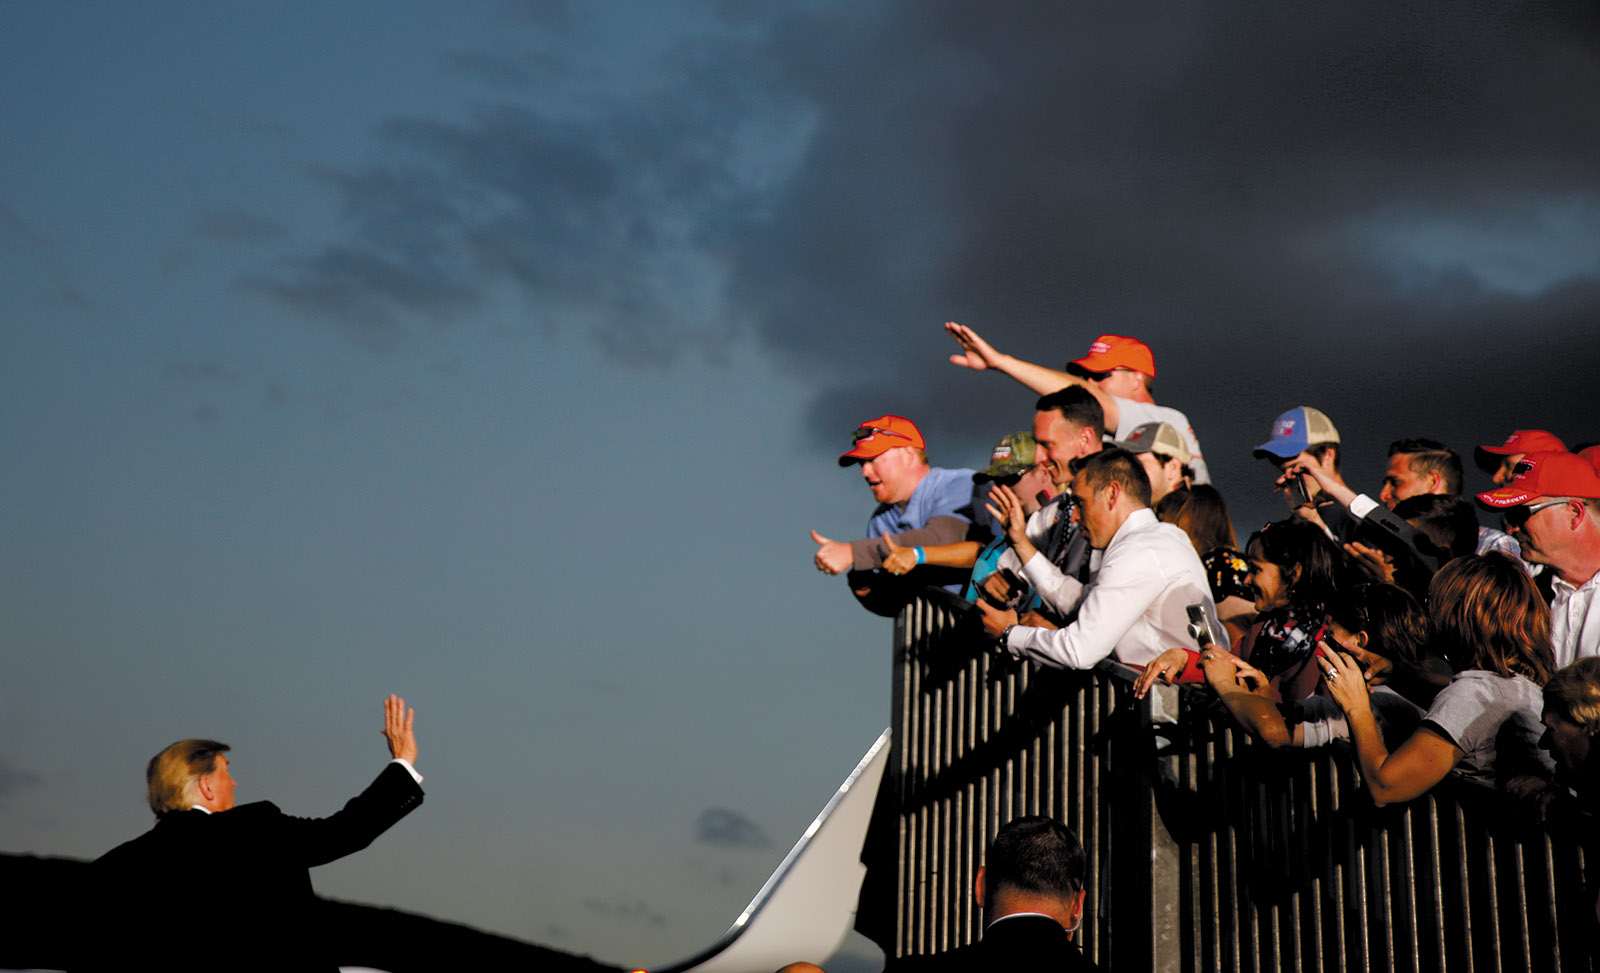 President Trump waving to supporters after a reelection campaign rally, Montoursville, Pennsylvania, May 2019